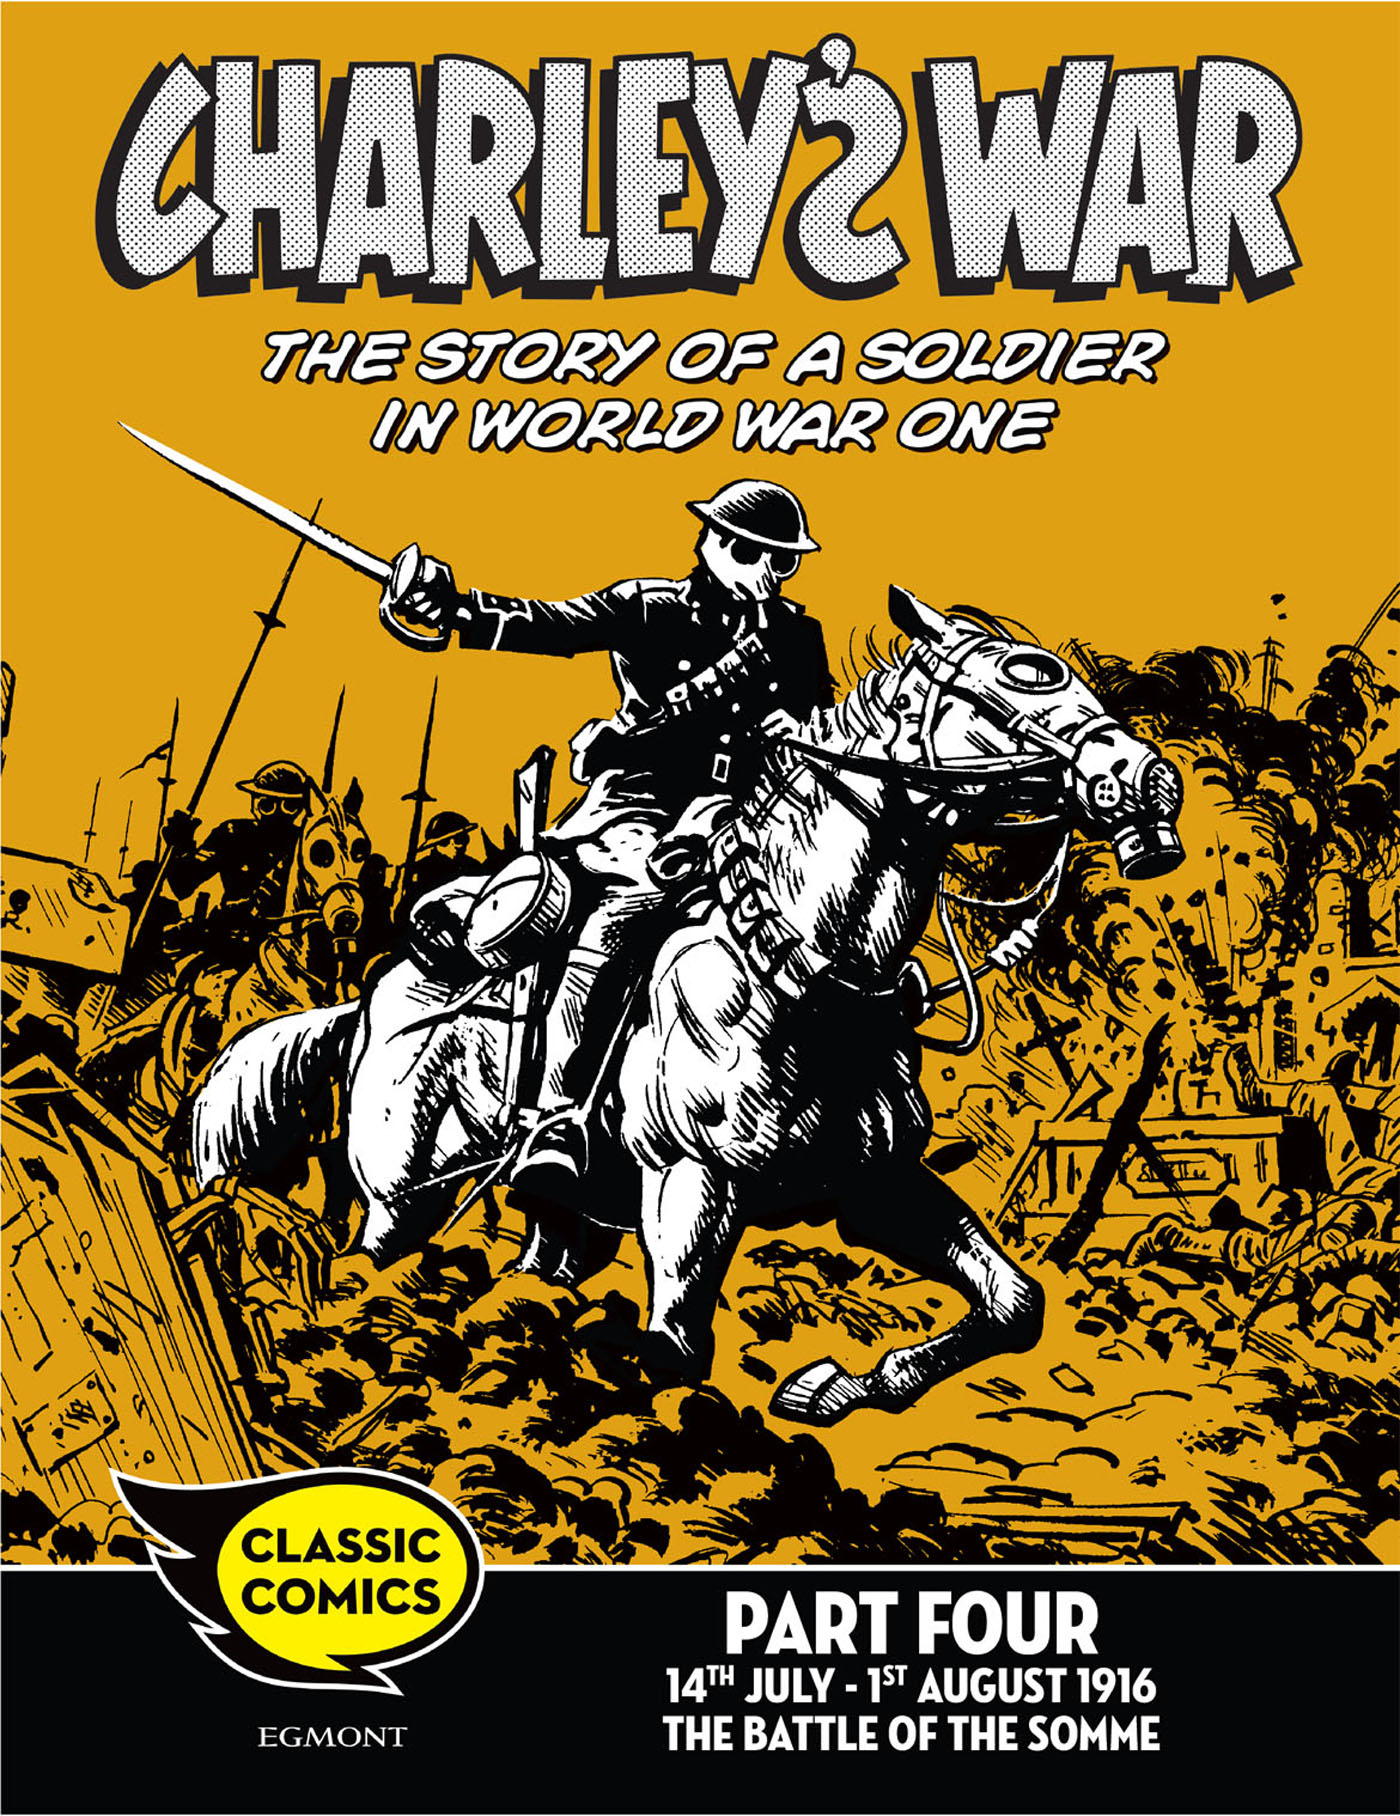 Charley's War Comic Part Four: 14th July-1st August 1916 The Battle of the Somme